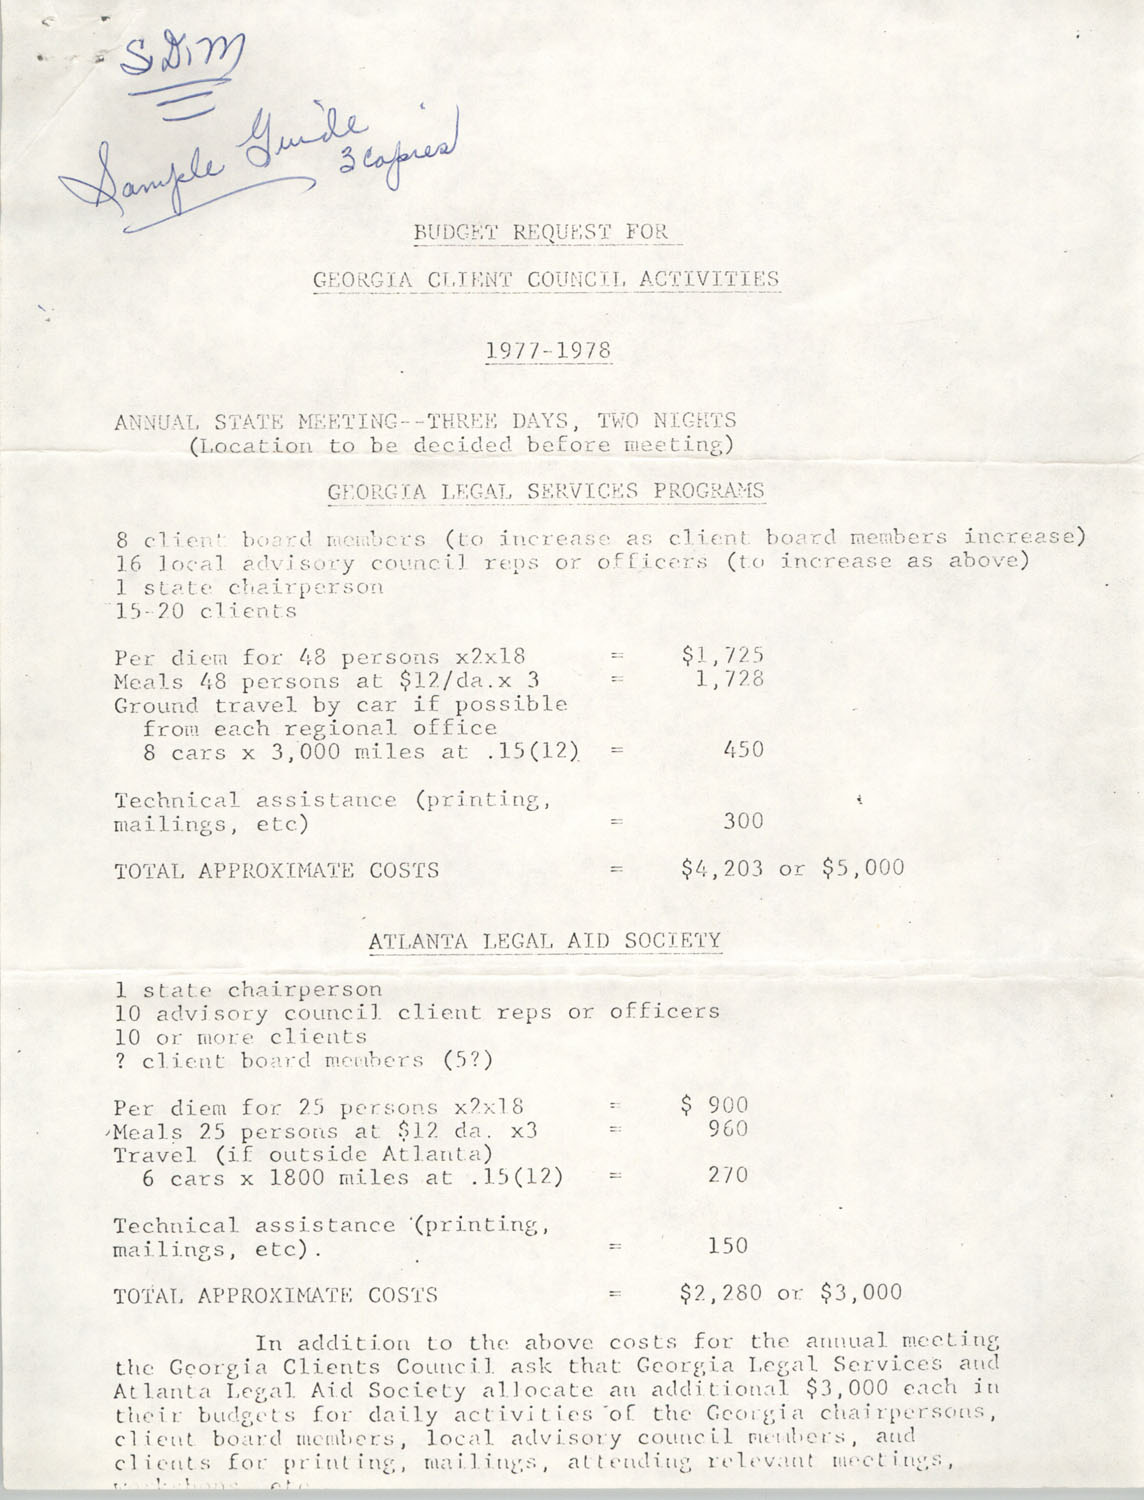 Budget Request for Georgia Client Council Activities, 1977-1978